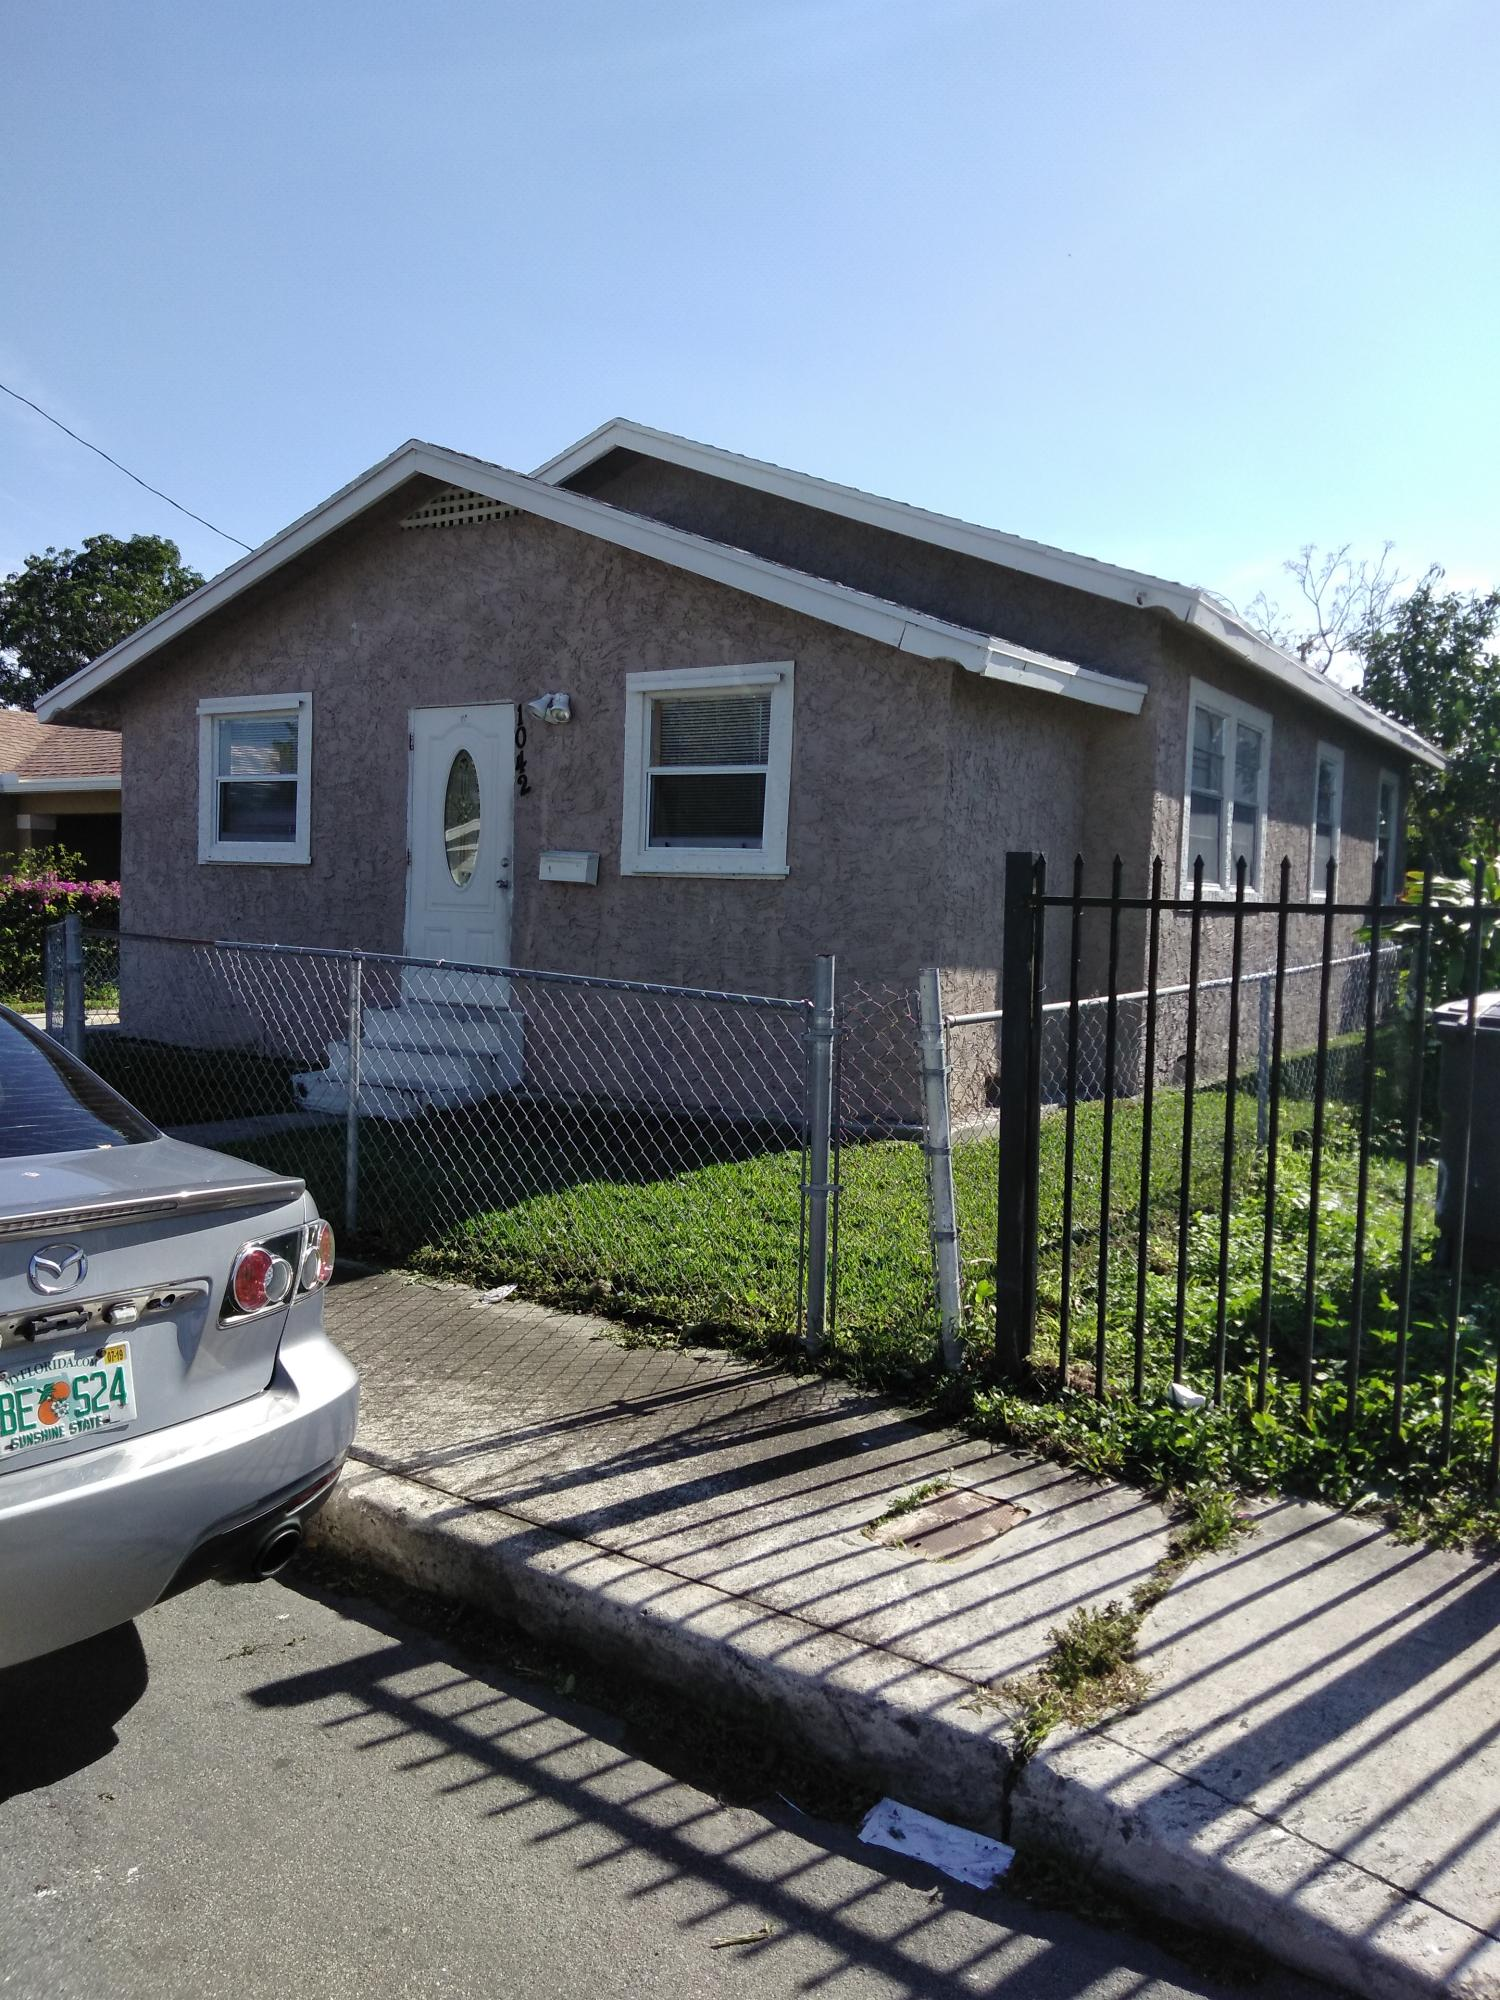 GRANT PARK ADD IN home 1042 22nd Street West Palm Beach FL 33407